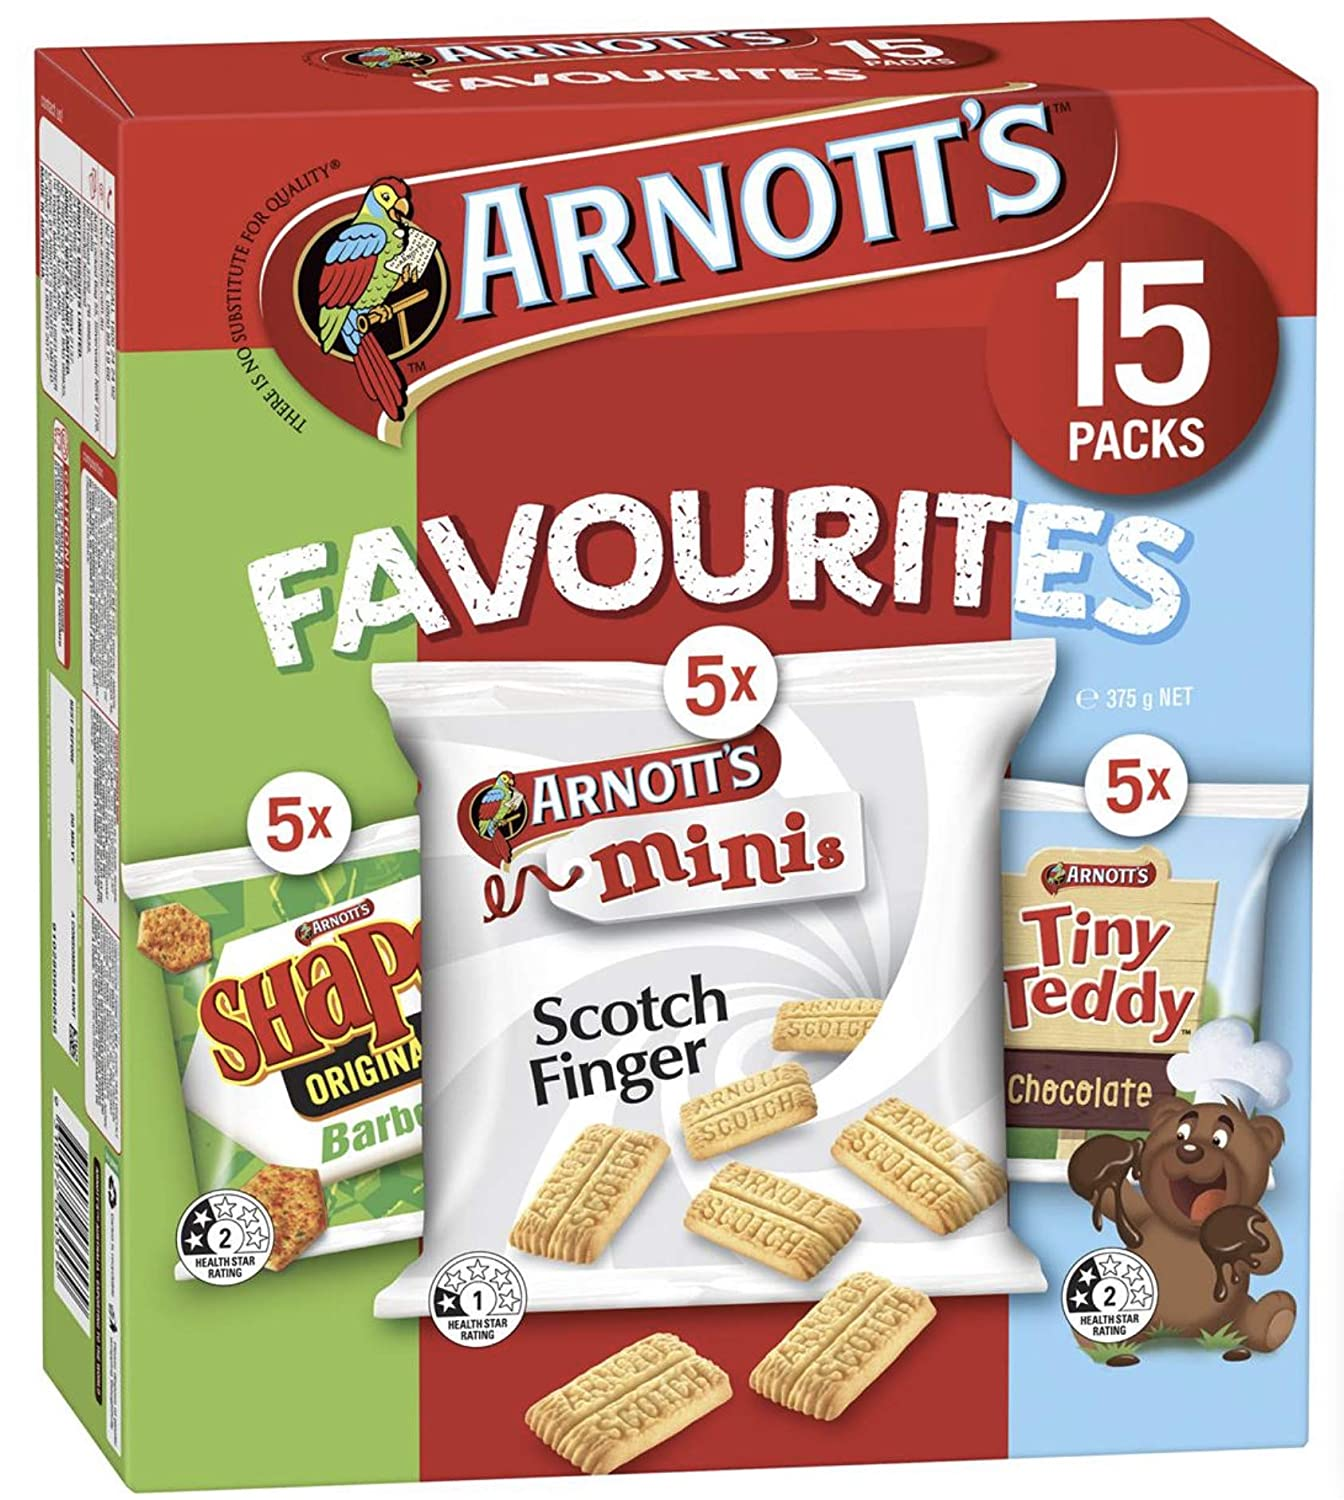 AUSTRALIAN MADE ARNOTT'S FAVOURITES MINIS BISCUITS BBQ SHAPES - SCOTCH FINGER - CHOCOLATE TINY TEDDY 15 PACKS 375g